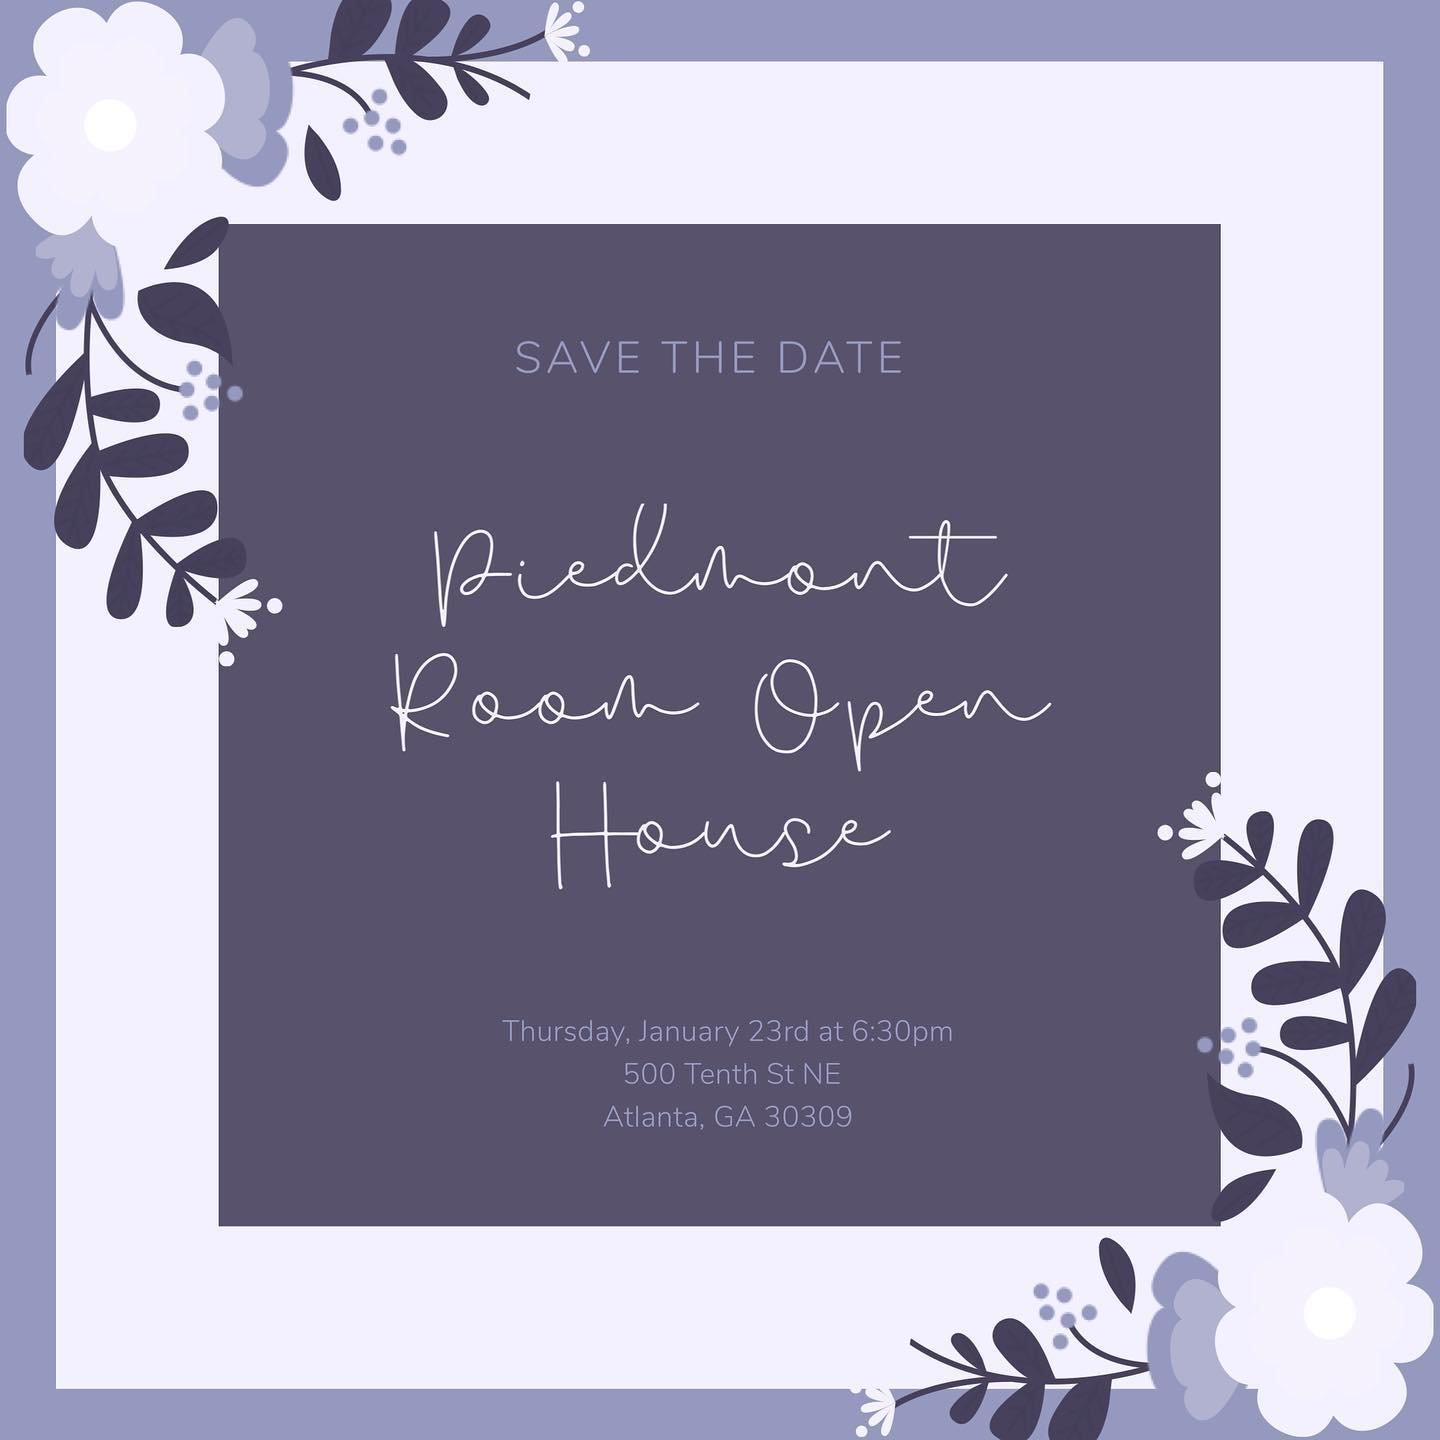 Piedmont Room Winter Open House 2020